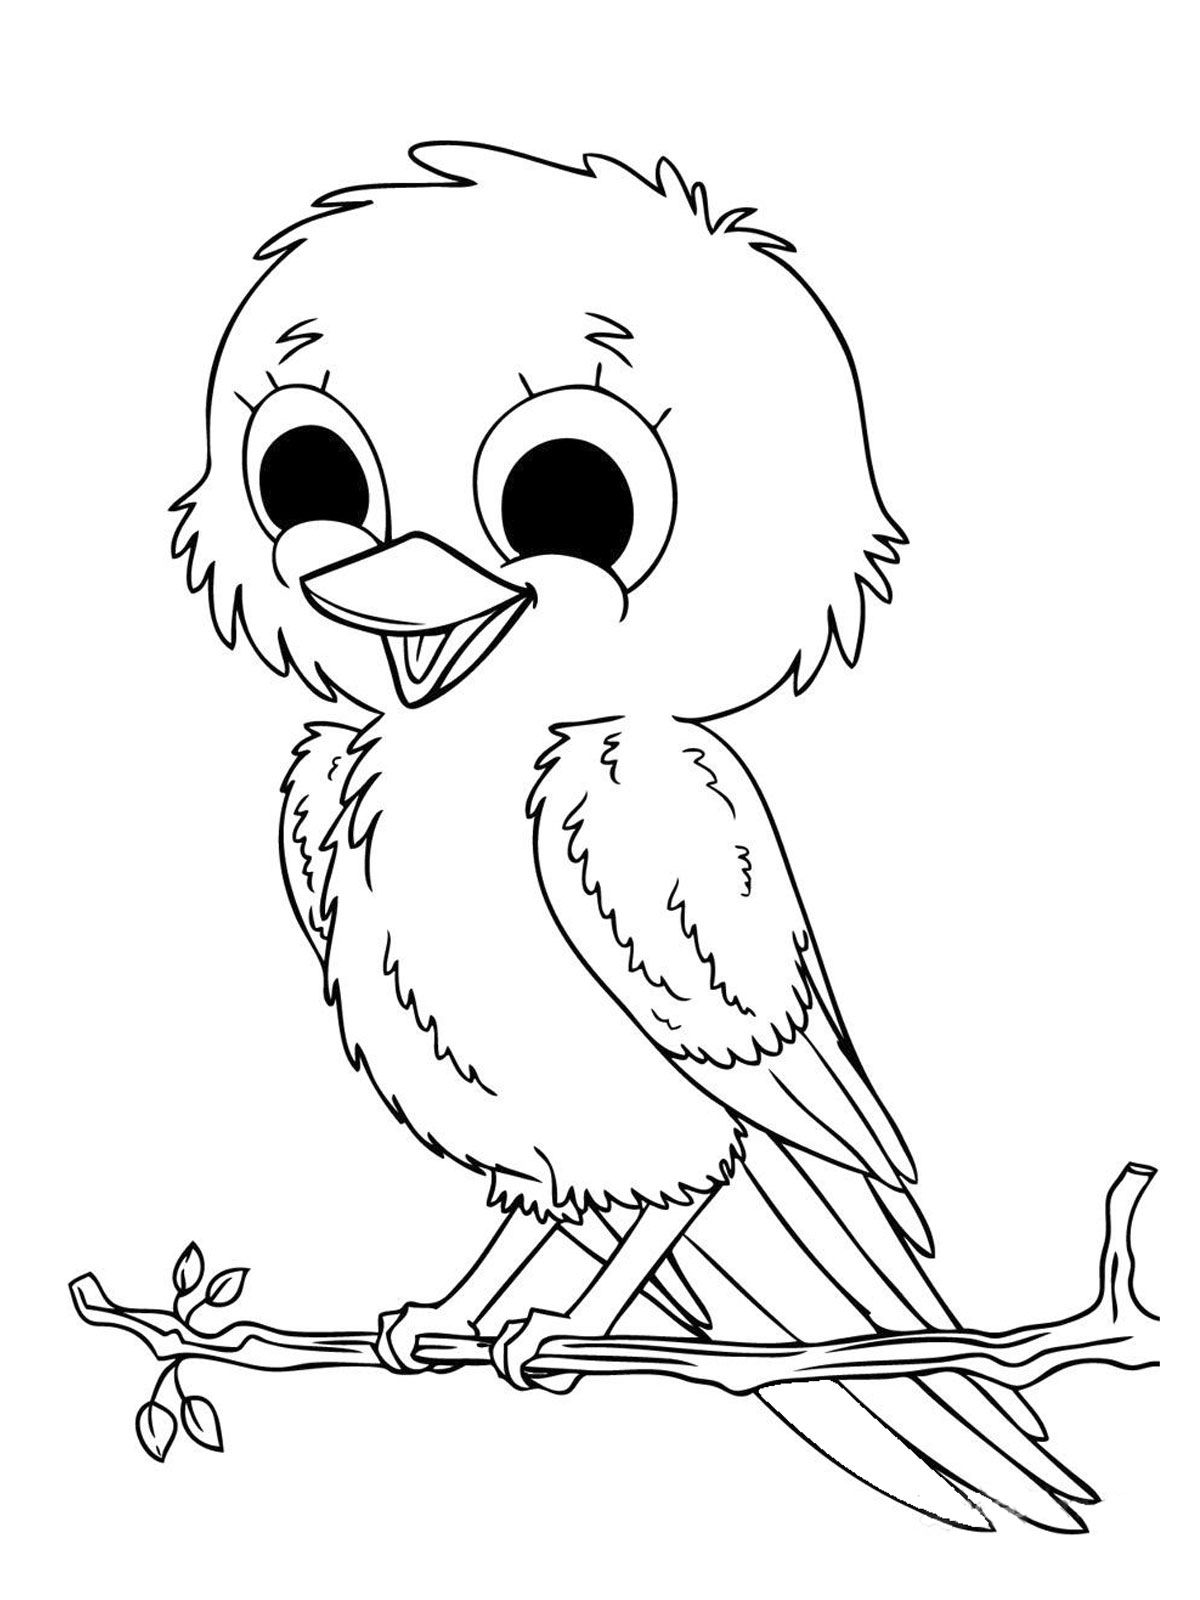 free coloring pages | Download all baby animals coloring pages ...